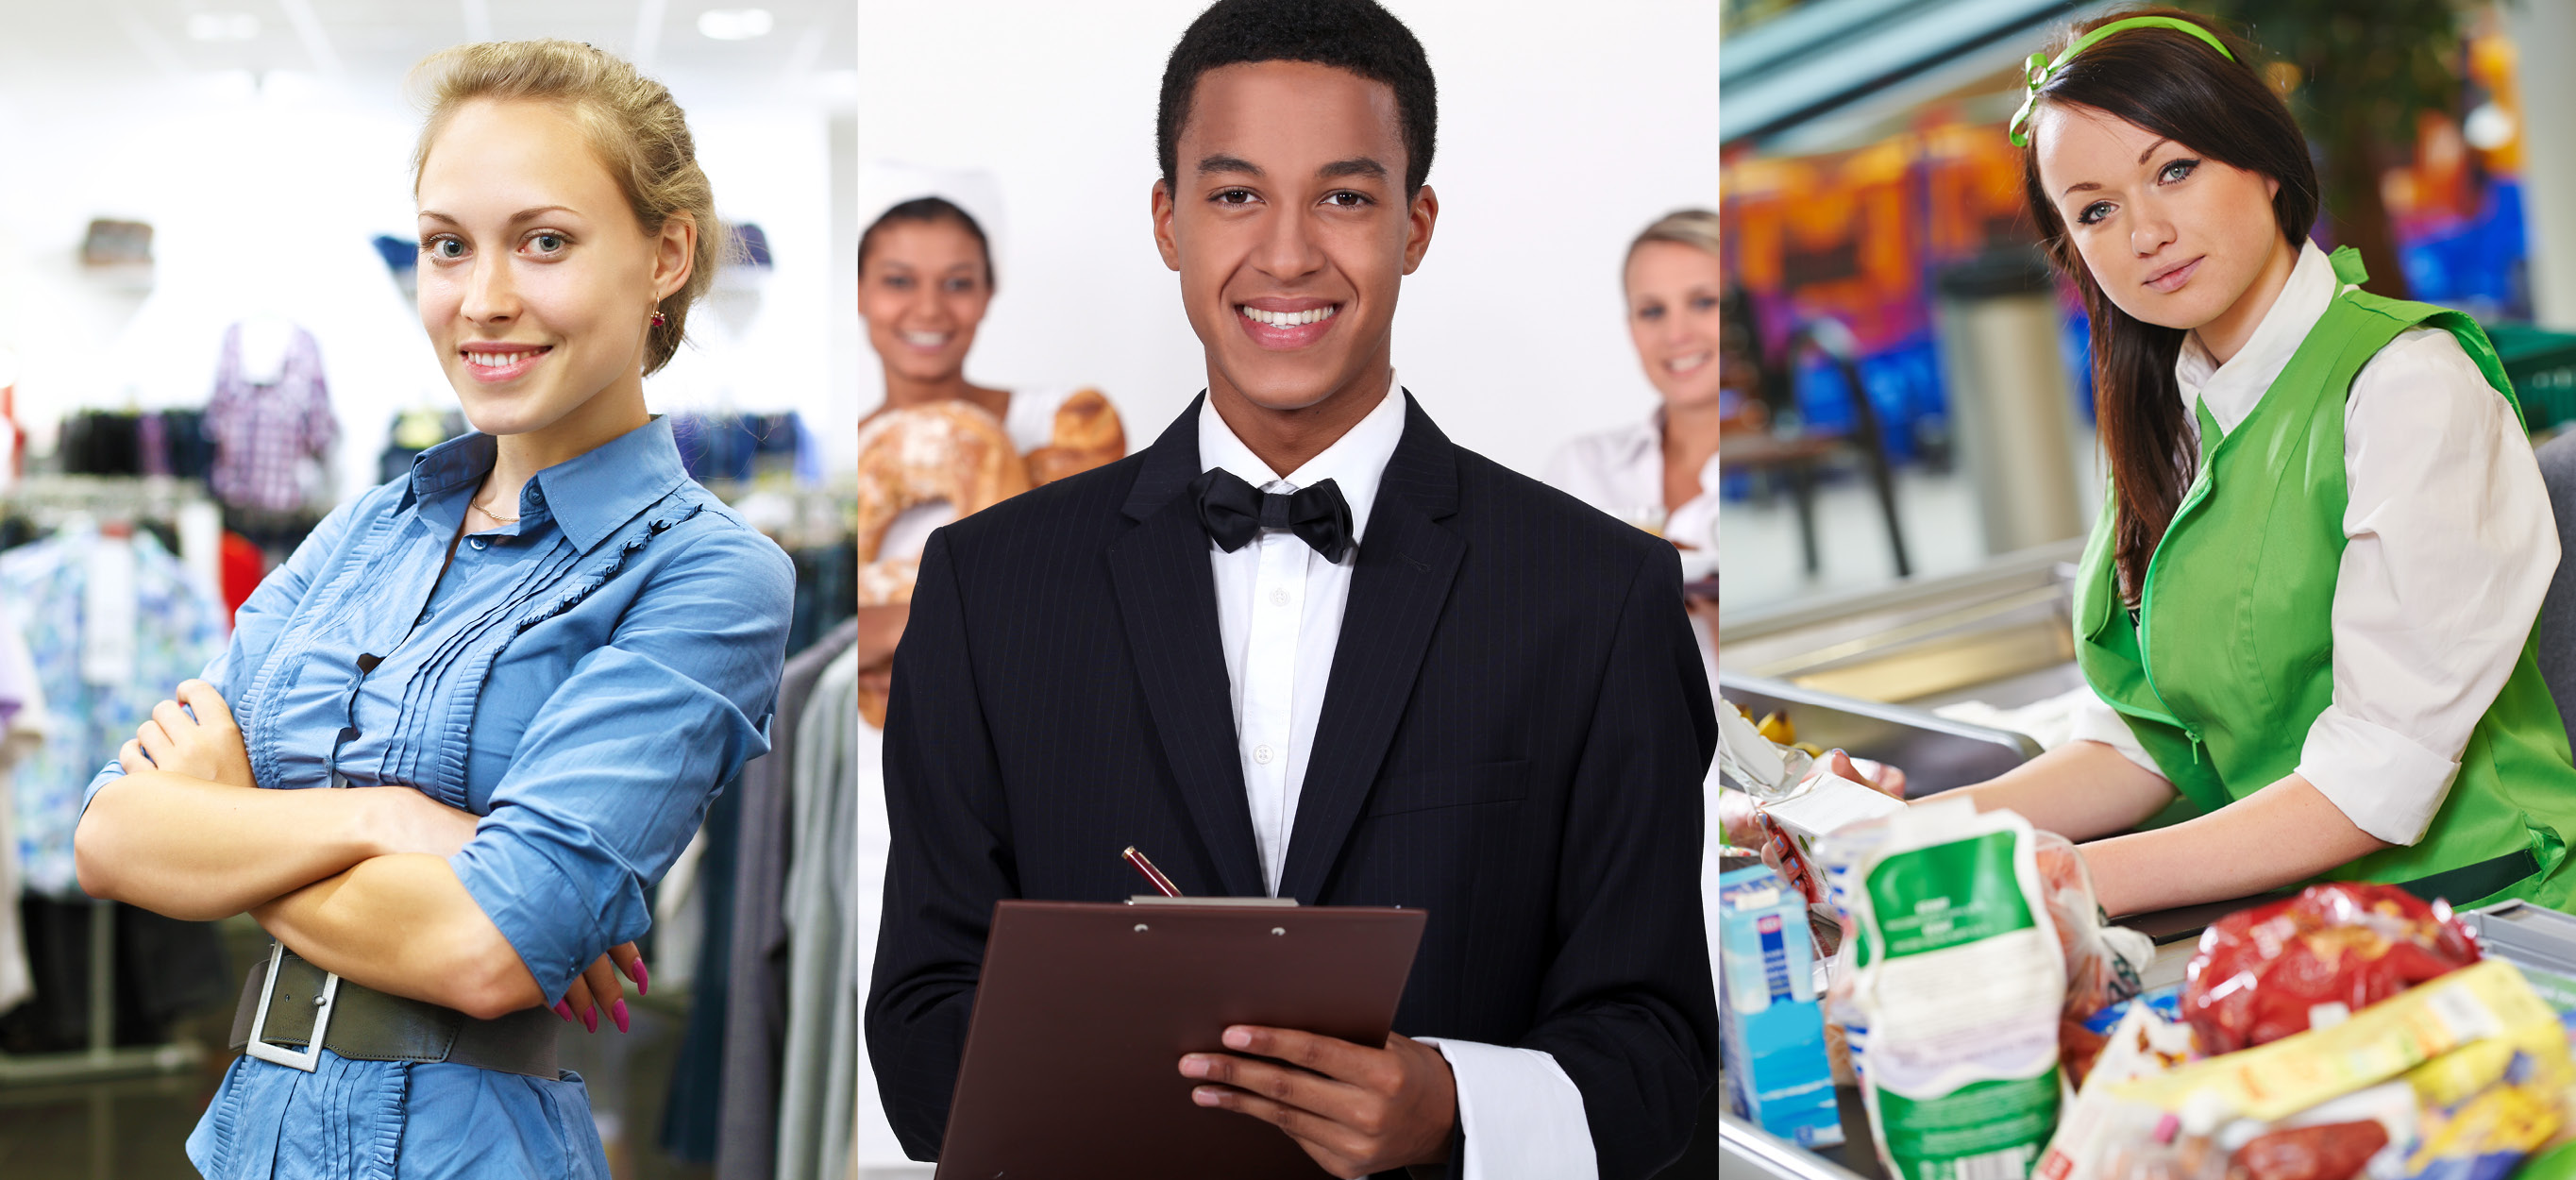 Image has 3 panels: a female retail worker in a clothing store, a male waiter holding a clipboard, & a female grocery cashier.